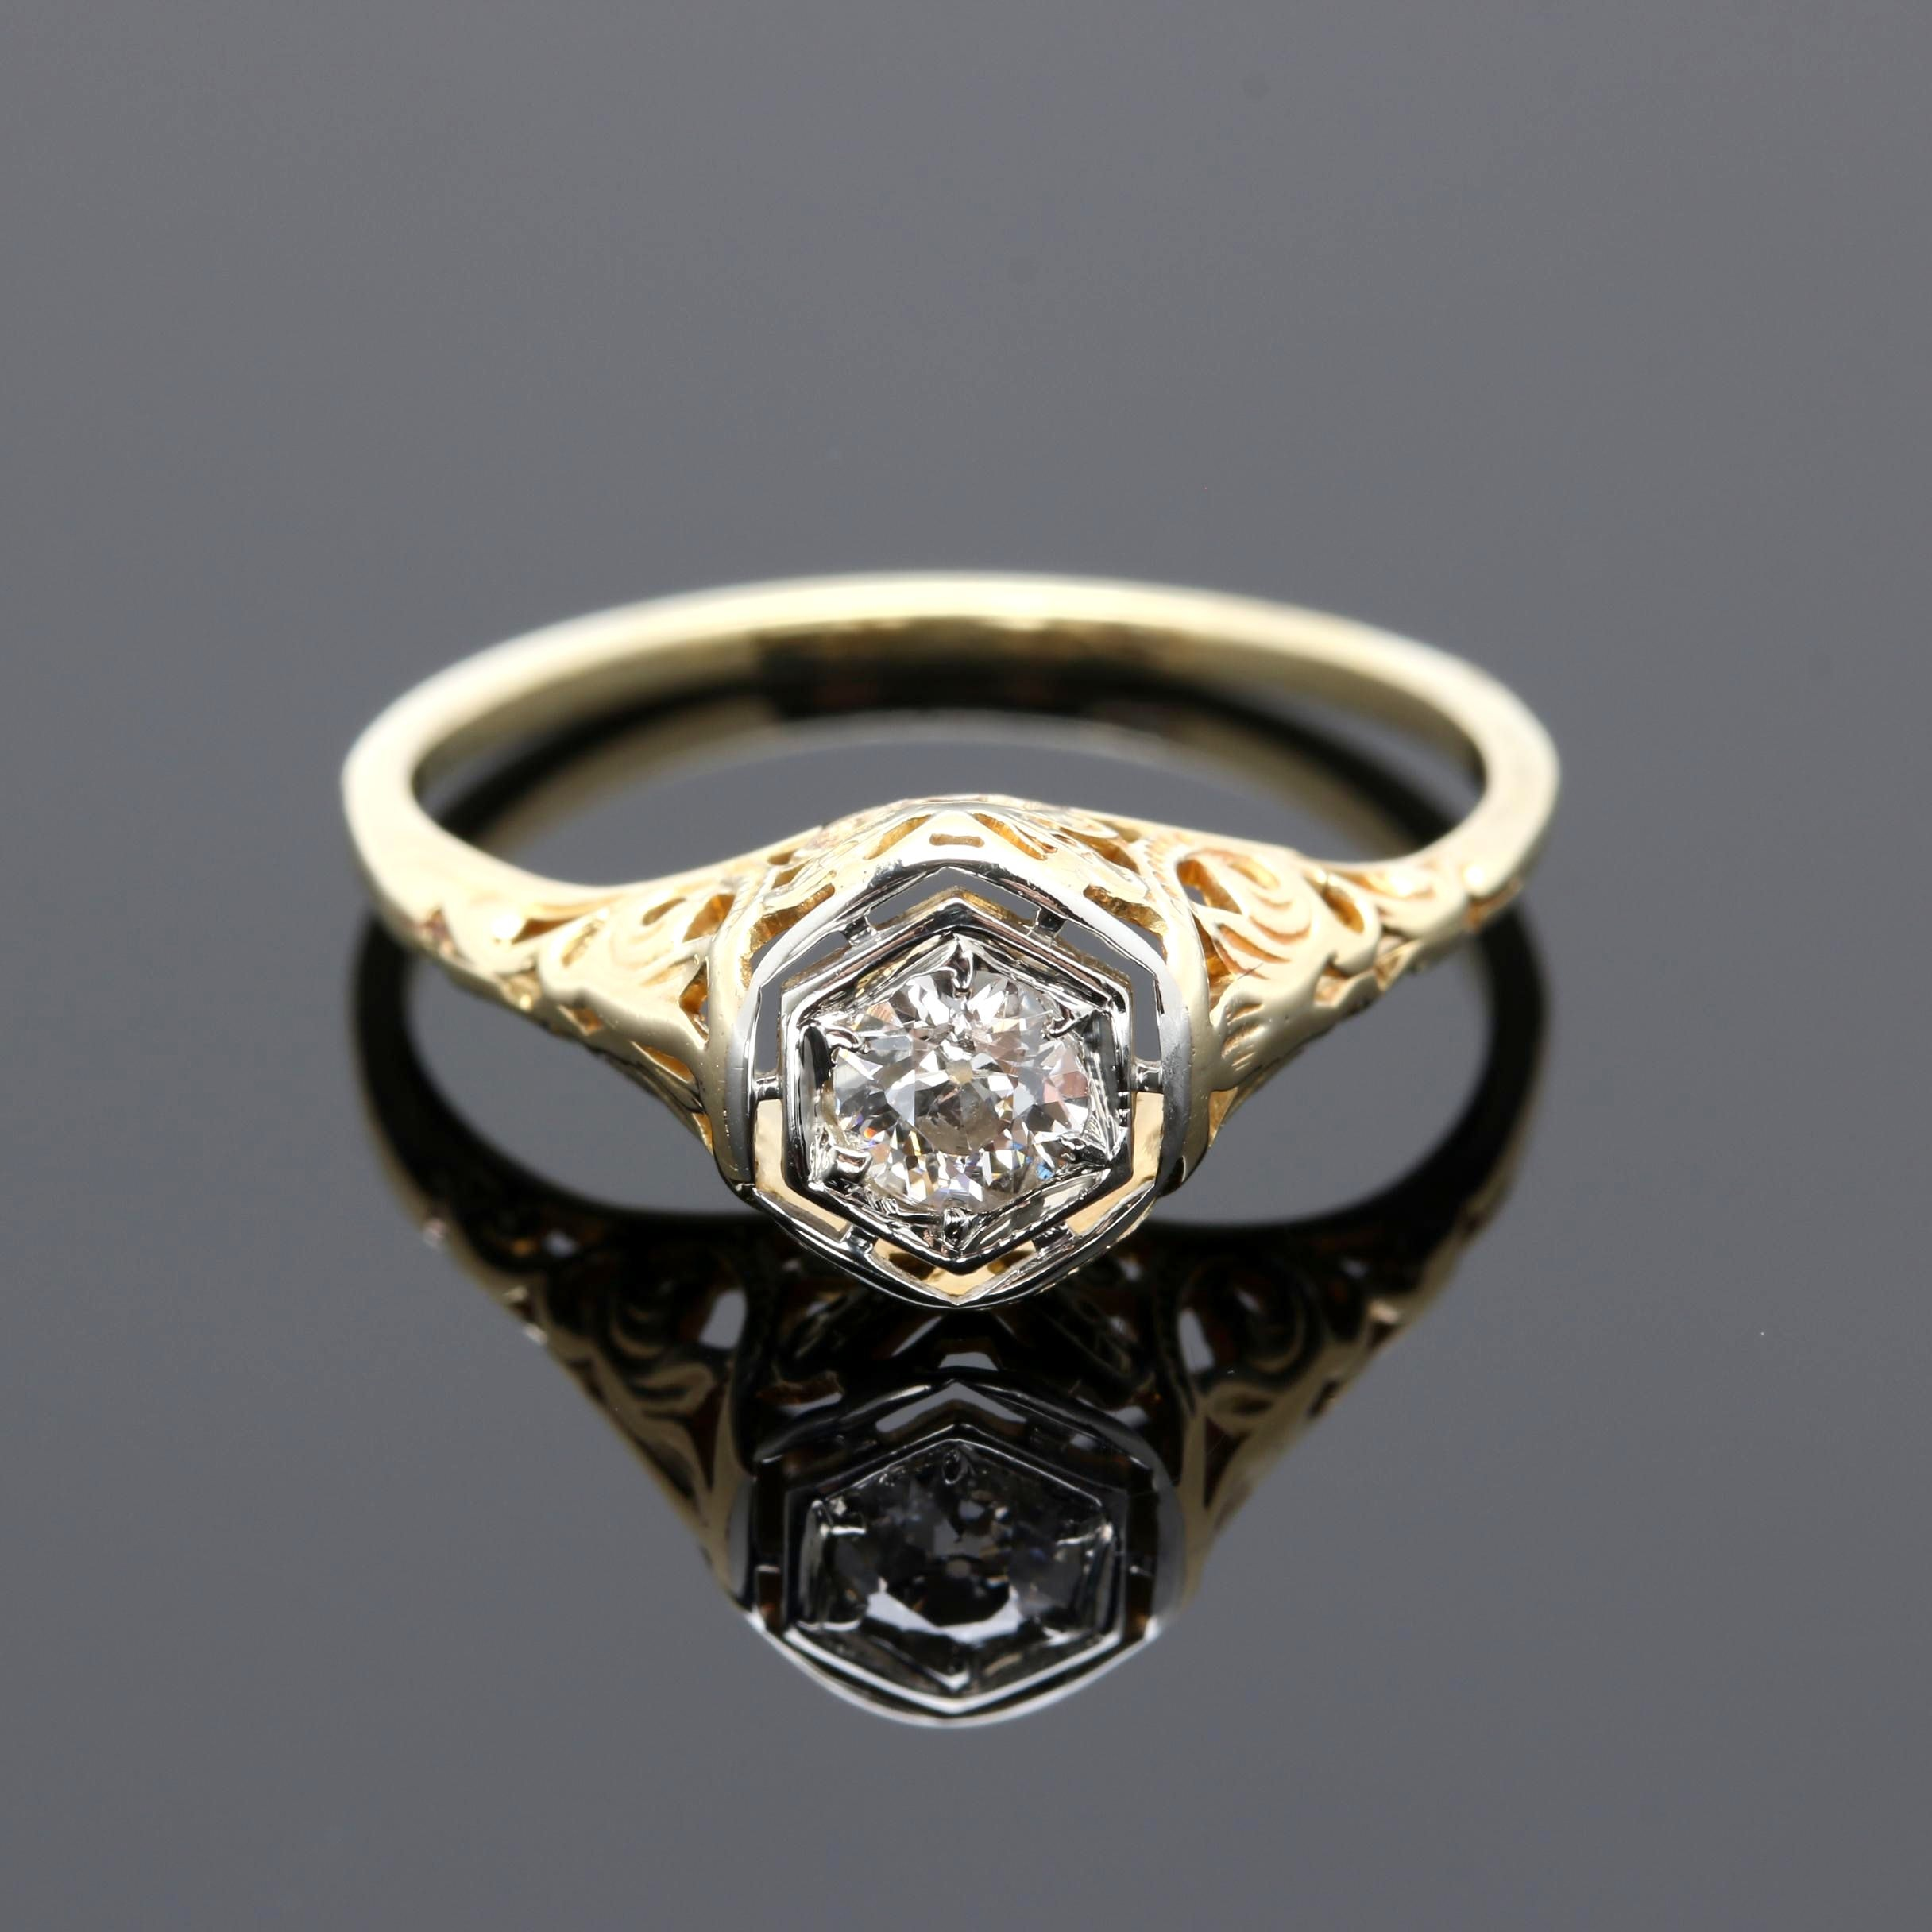 Art Deco 14K and 18K Two Tone Gold Diamond Ring